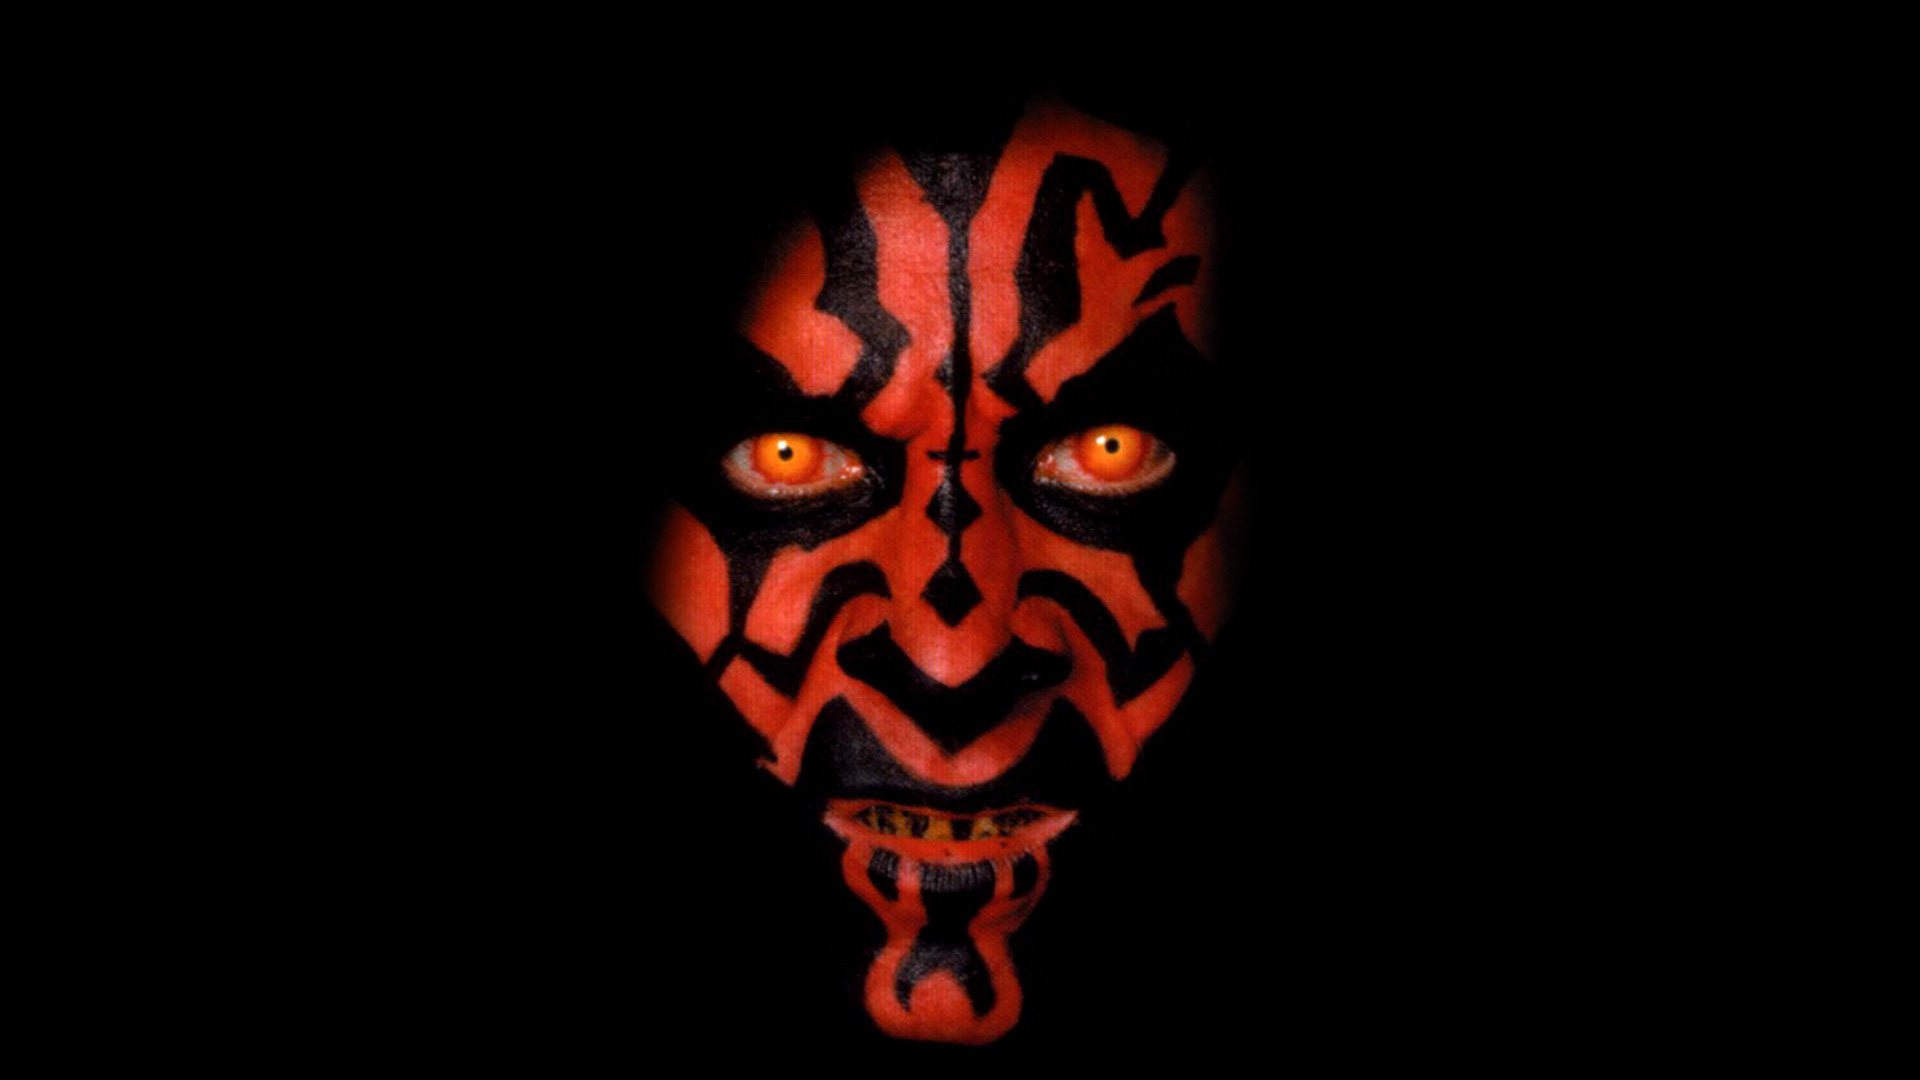 Sith Wallpapers 1920x1080 Full Hd 1080p Desktop Backgrounds